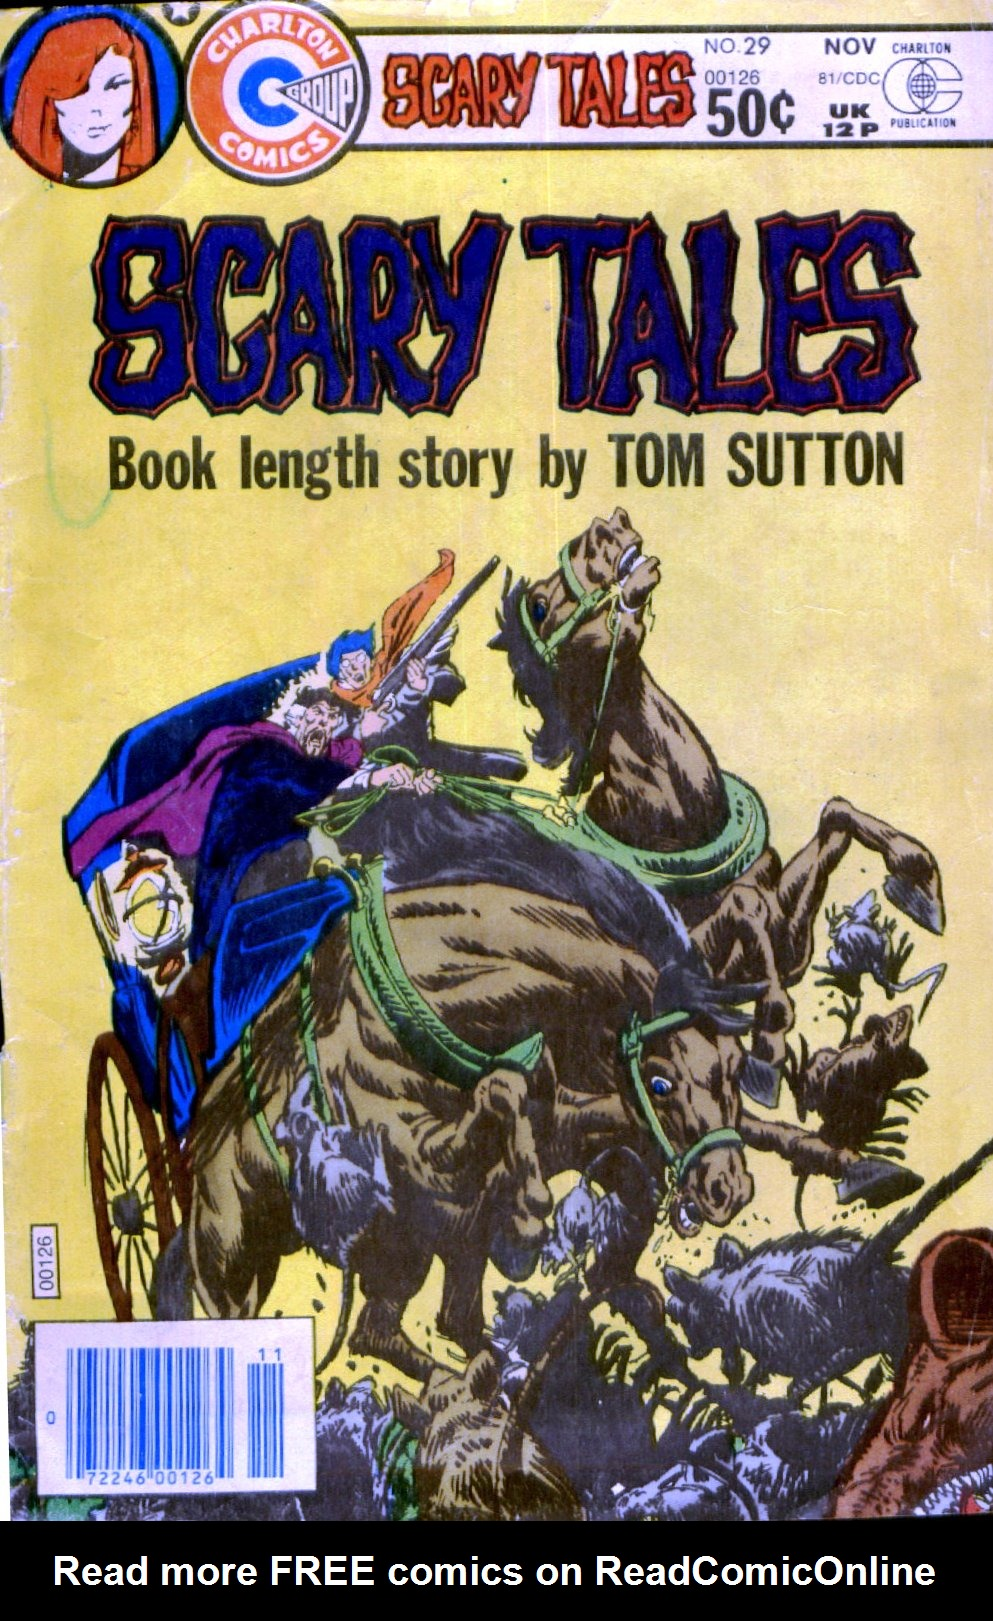 Read online Scary Tales comic -  Issue #29 - 1